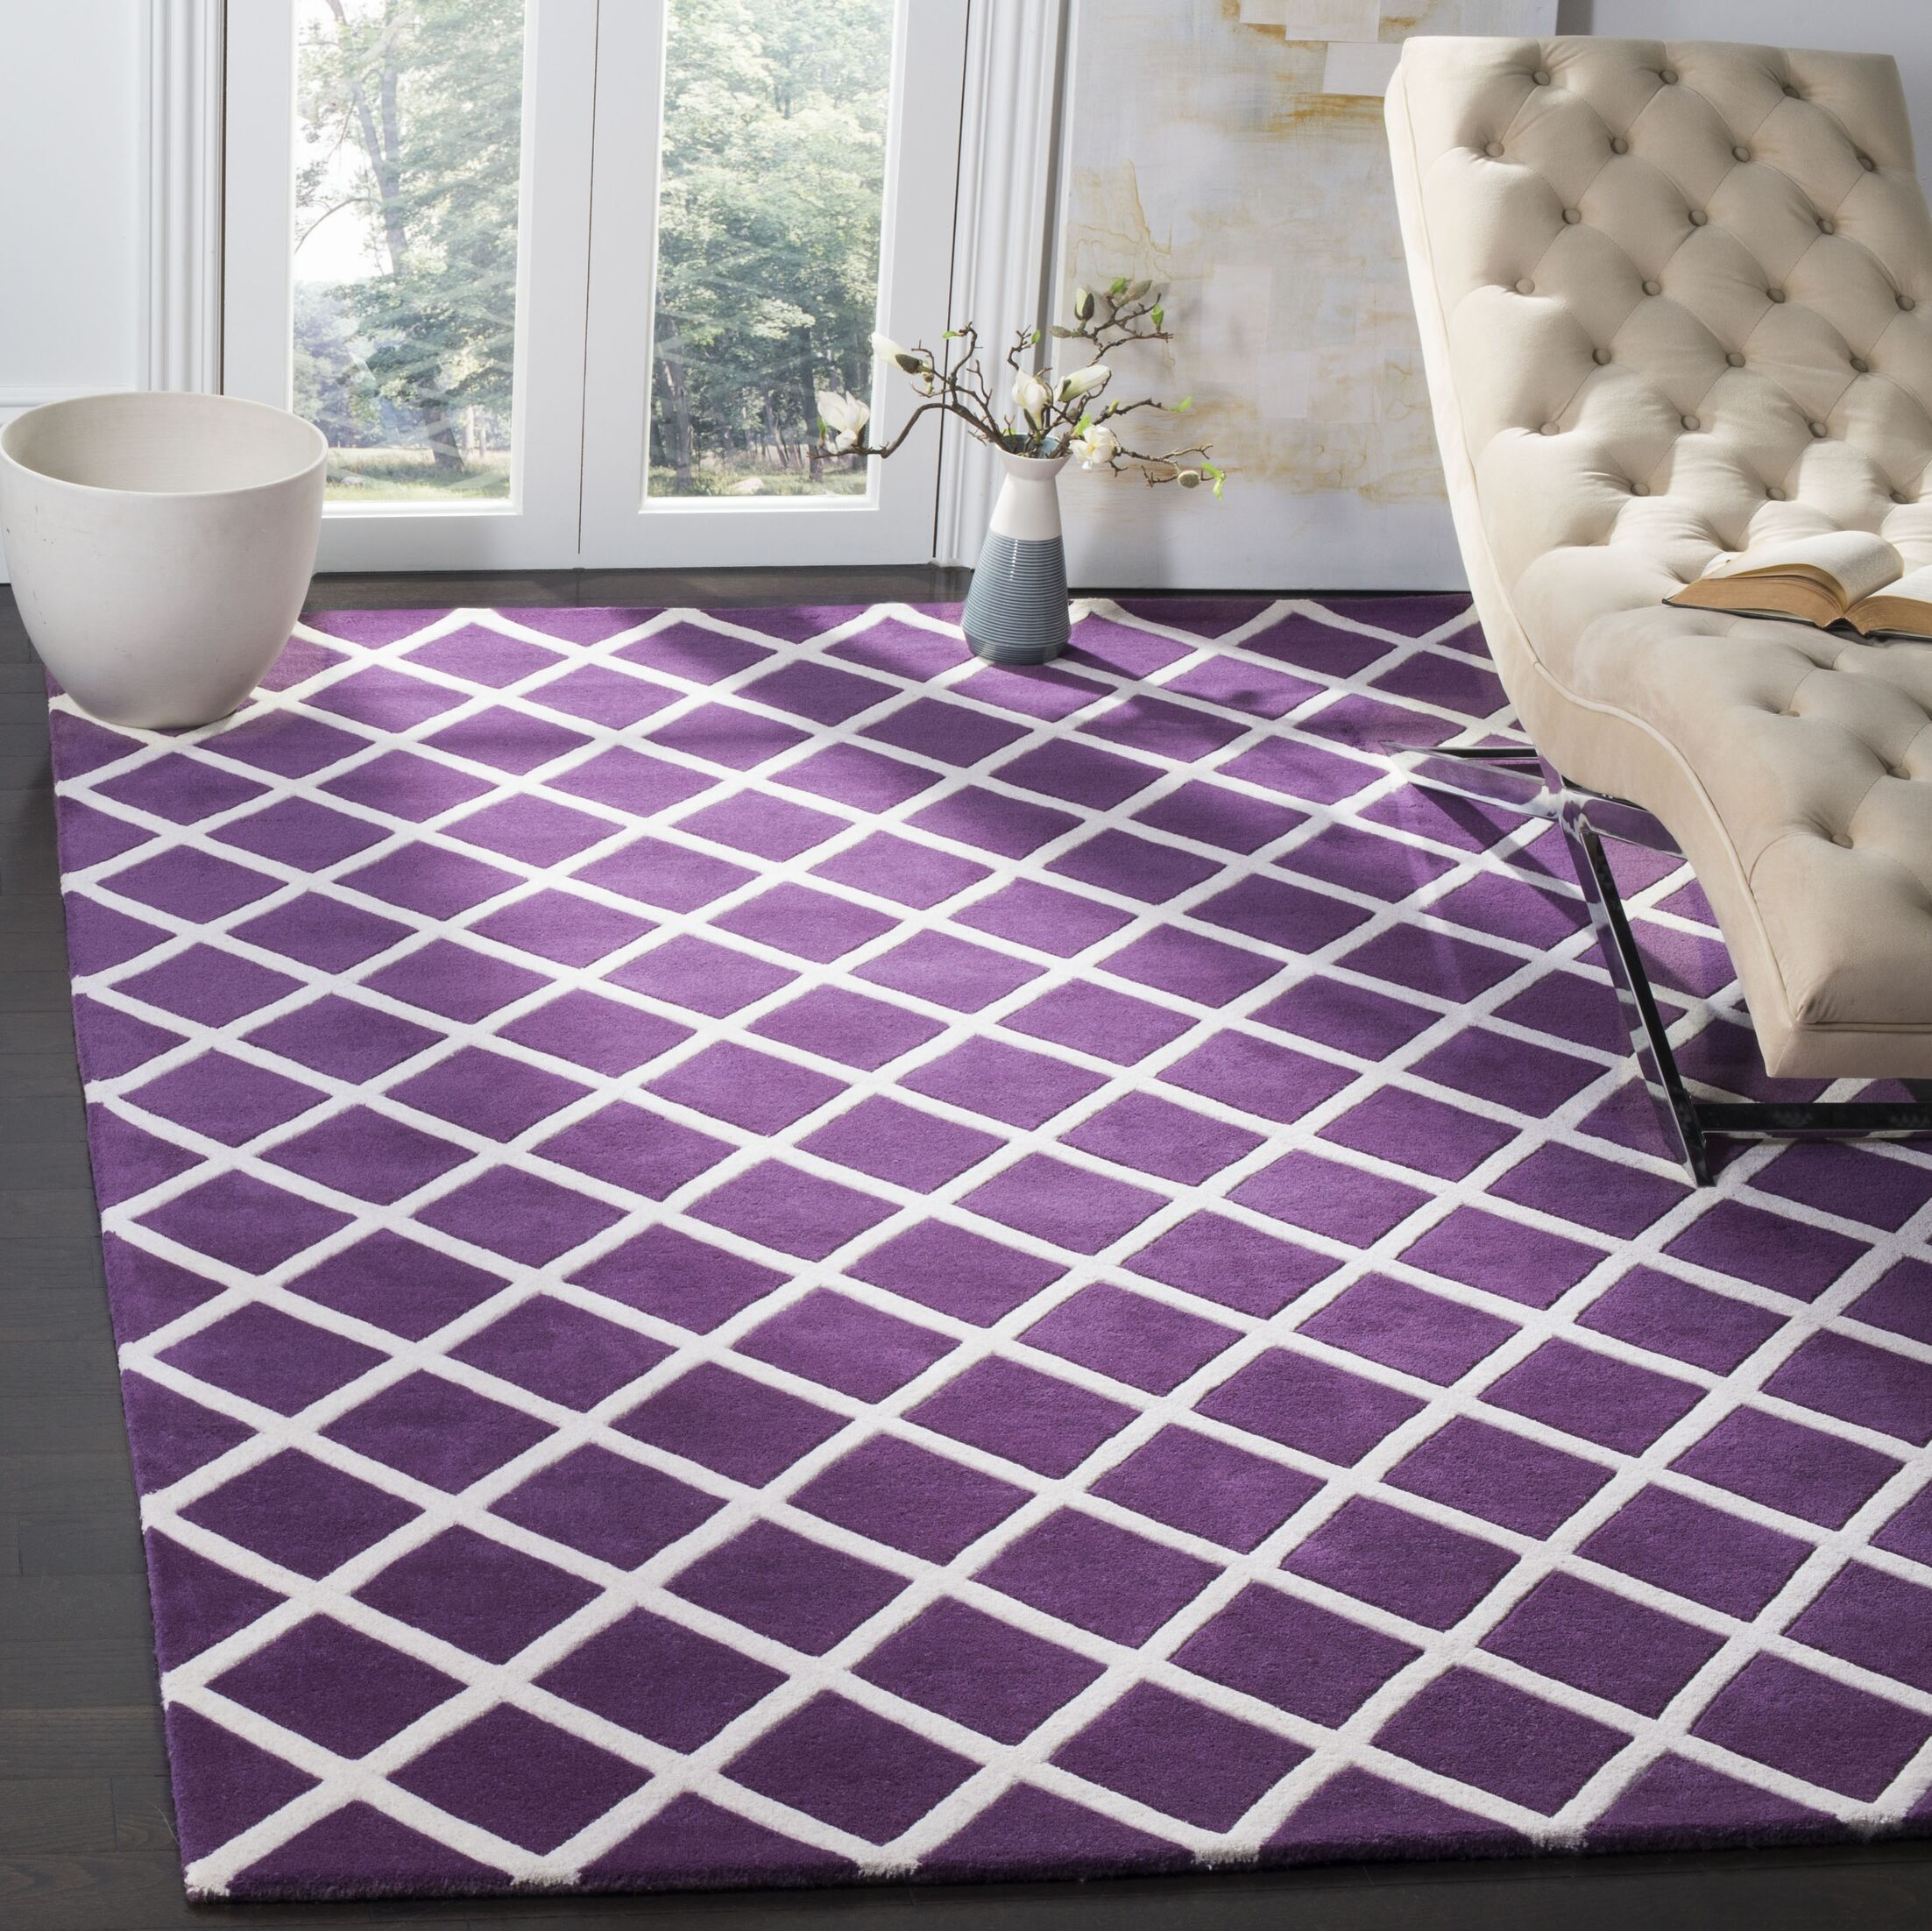 Wilkin Hand-Tufted Wool Purple/Ivory Area Rug Rug Size: Rectangle 6' x 9'